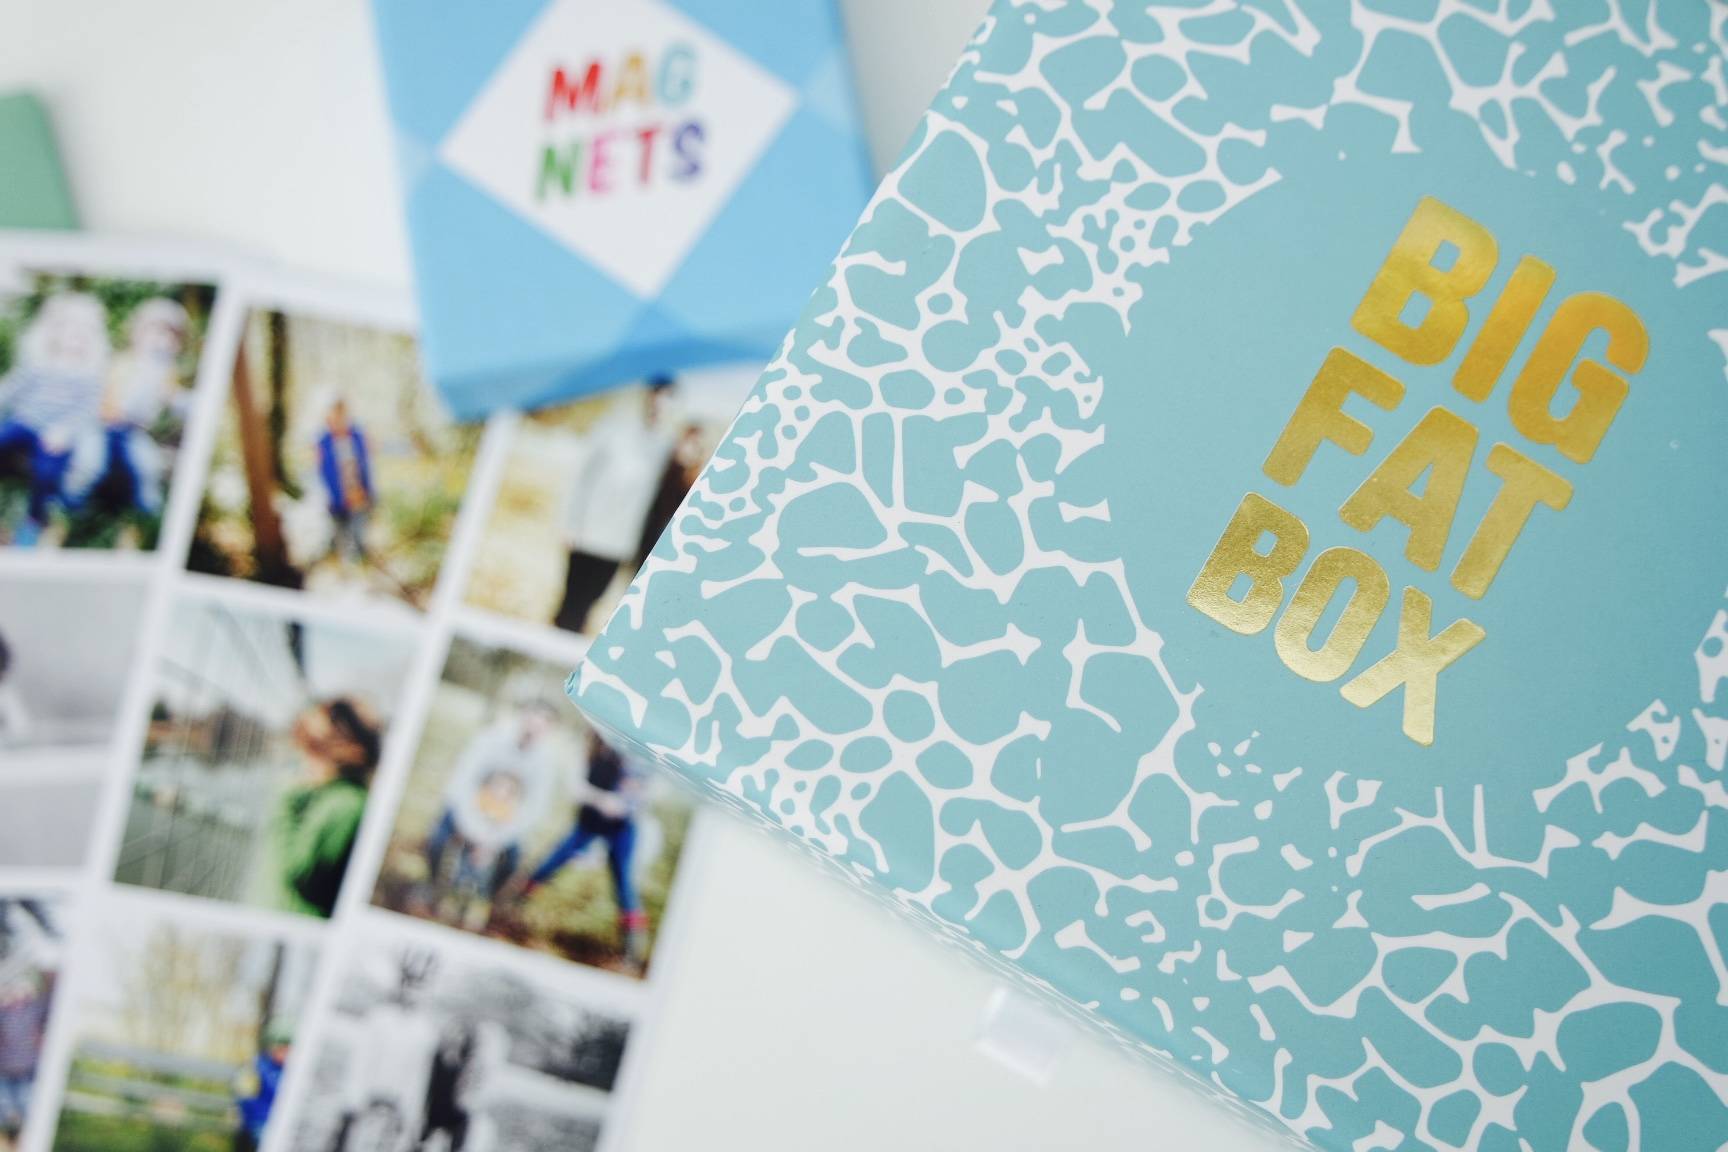 Print your photos and make keepsakes with Cheerz.com